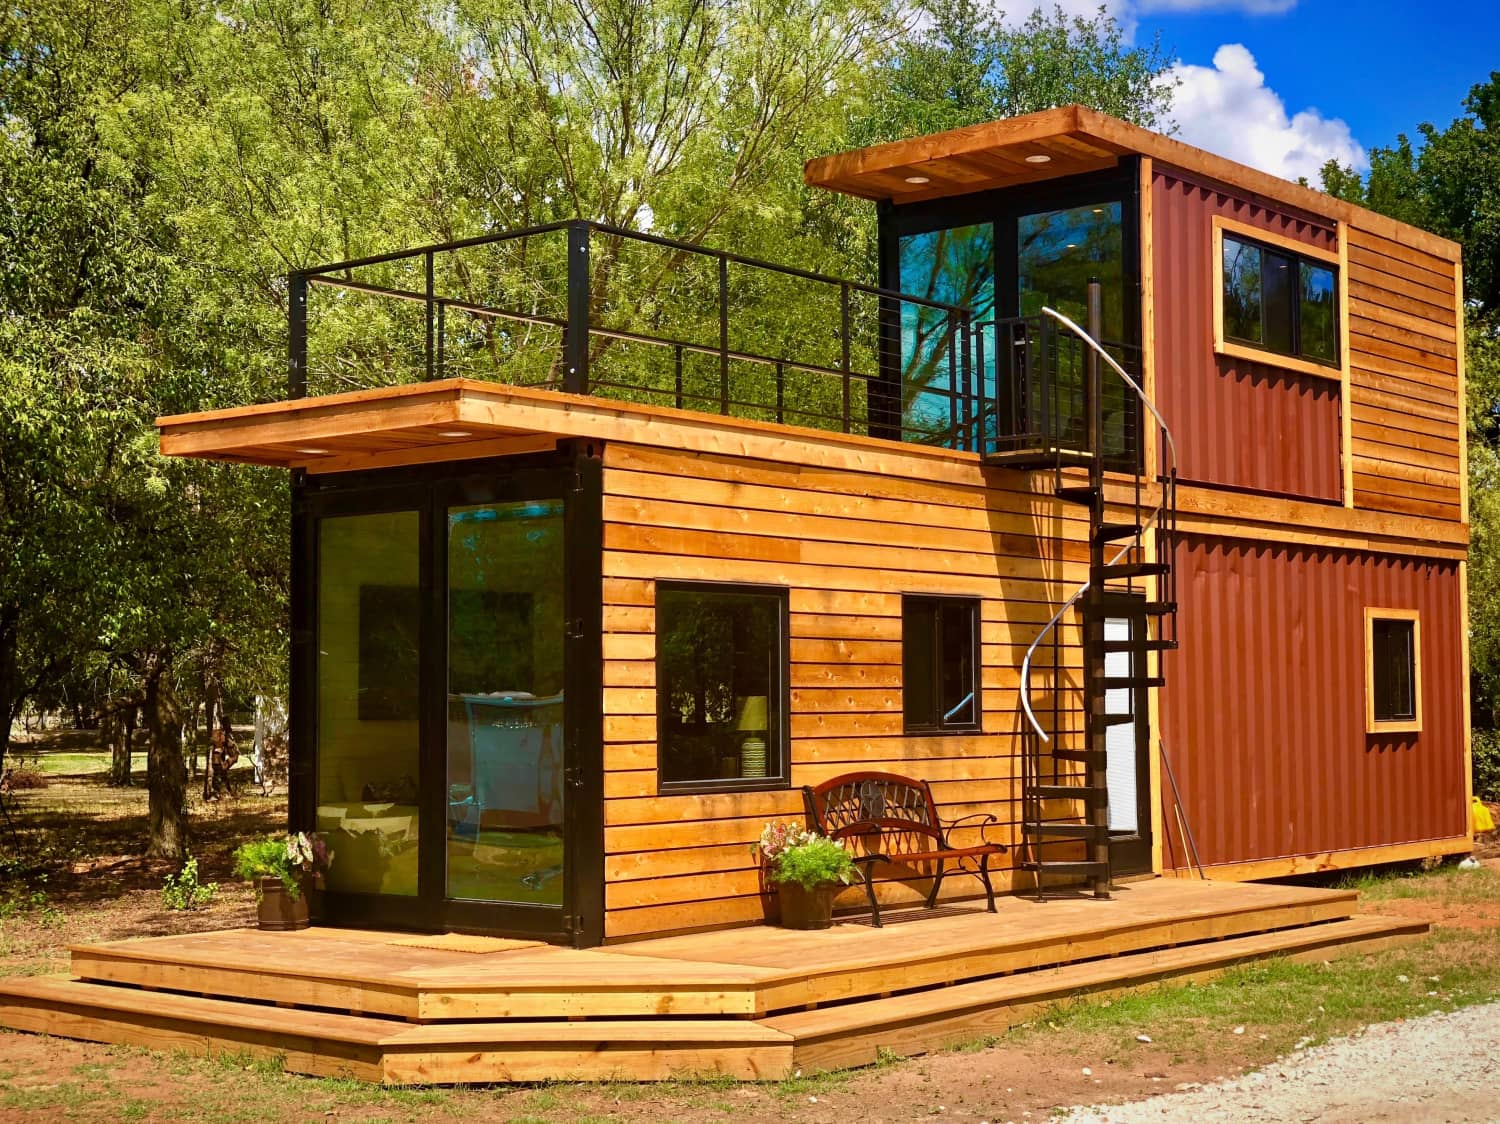 rent this chic shipping container tiny house for under 200 apartment therapy. Black Bedroom Furniture Sets. Home Design Ideas